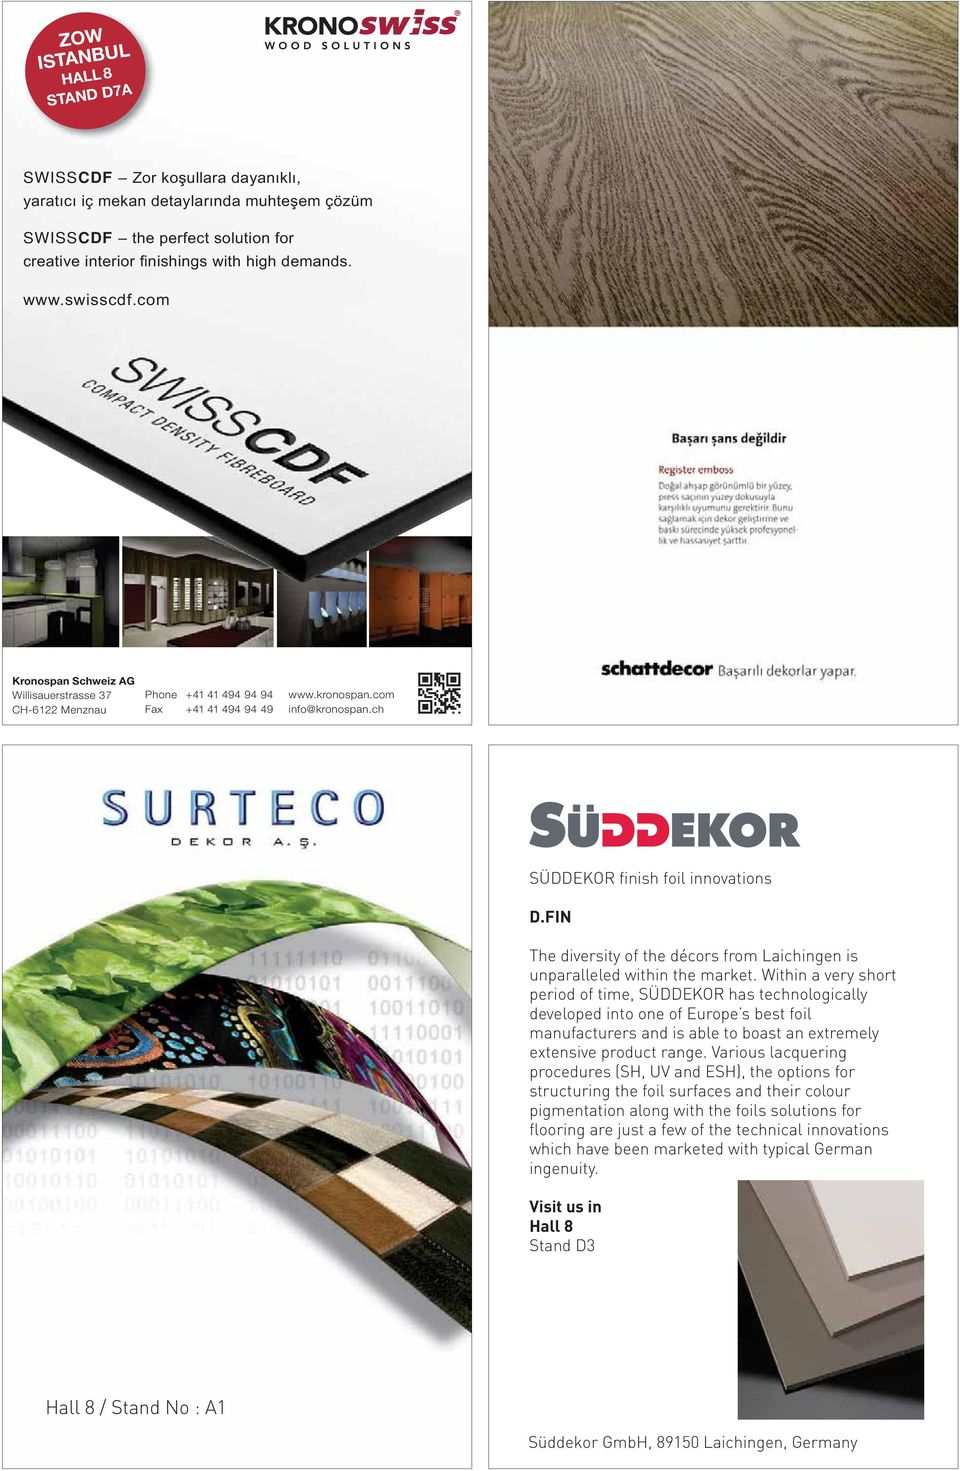 Within a very short period of time, SÜDDEKOR has technologically developed into one of Europe s best foil manufacturers and is able to boast an extremely extensive product range.